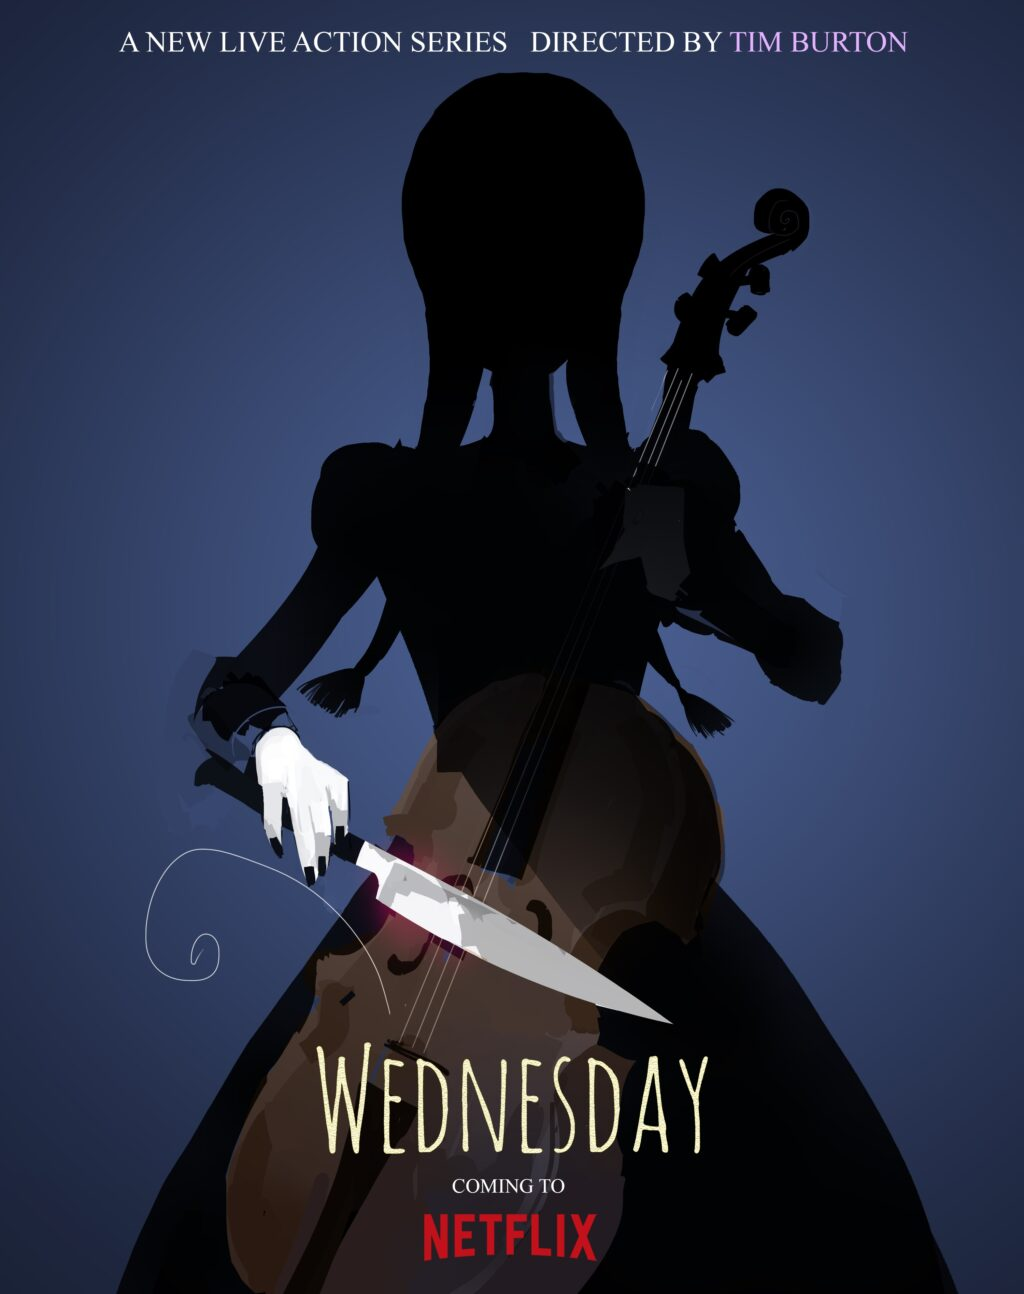 Wednesday FinalVerticalAnnounce 1024x1294 - Breaking: Tim Burton Will Make His TV Directorial Debut with Wednesday Addams Spinoff Series!